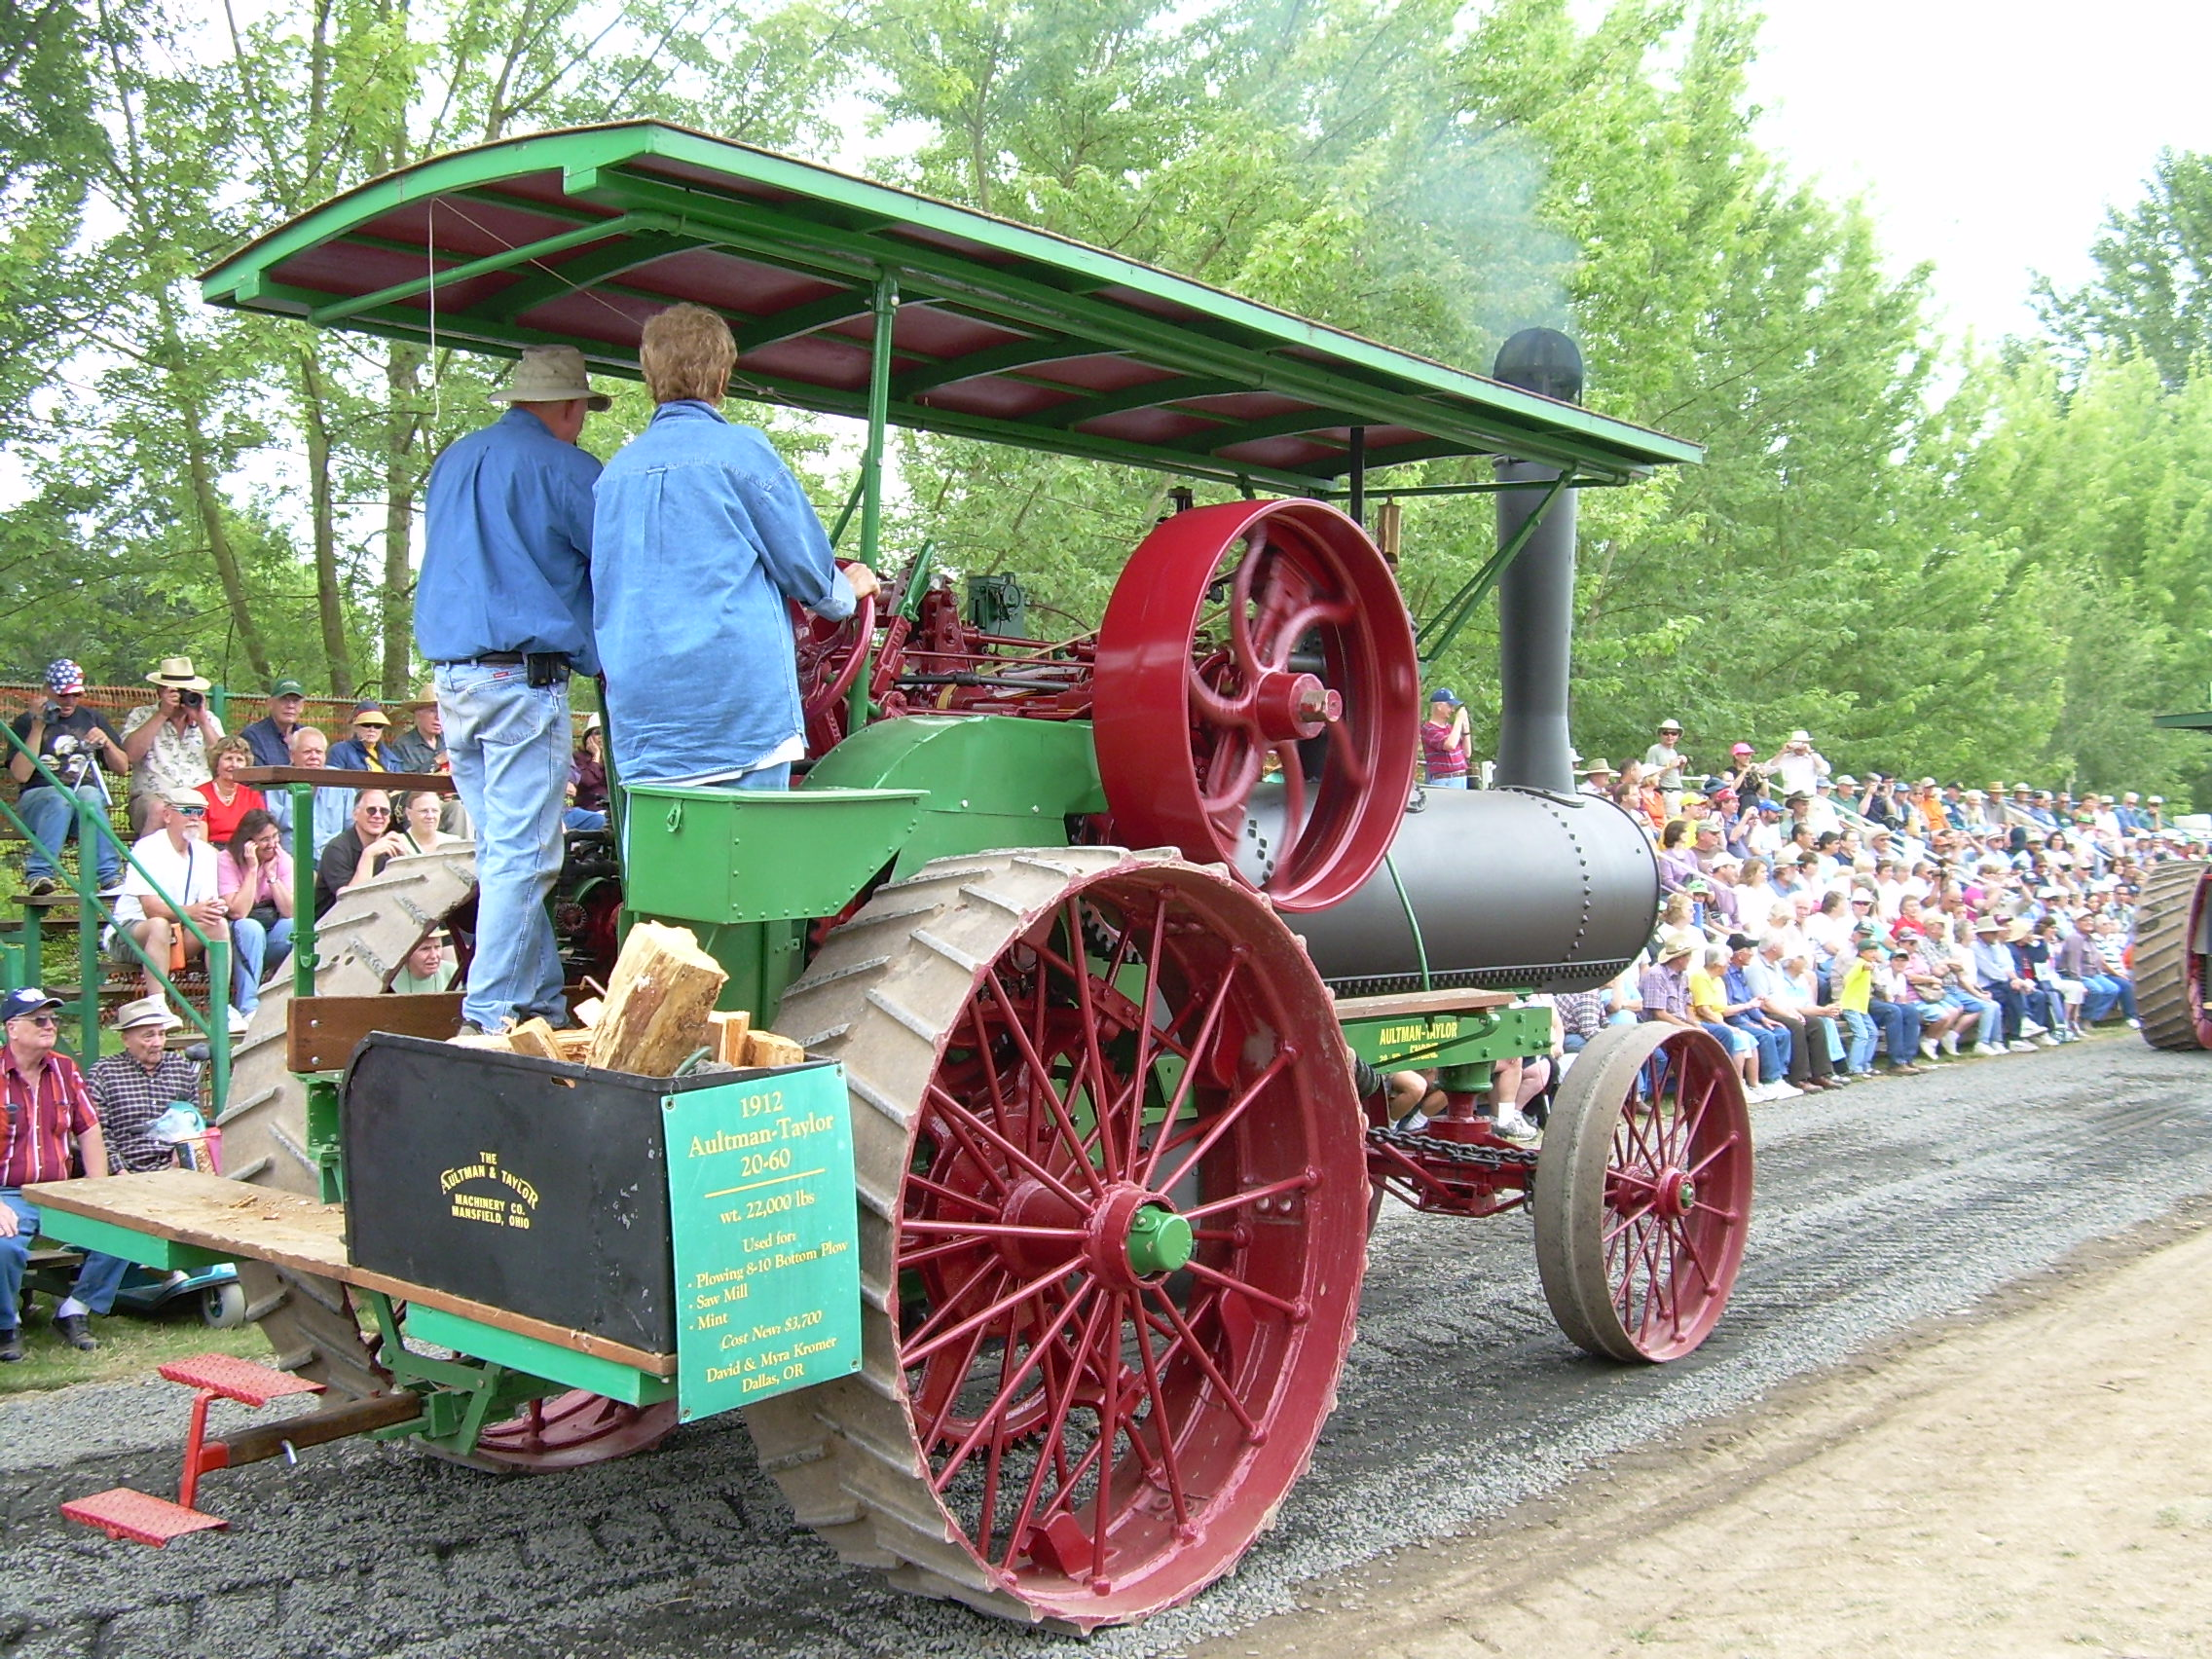 Onlookers fill the bleachers during the tractor parade at the Great Oregon Steam-Up. Photo Antique Powerland